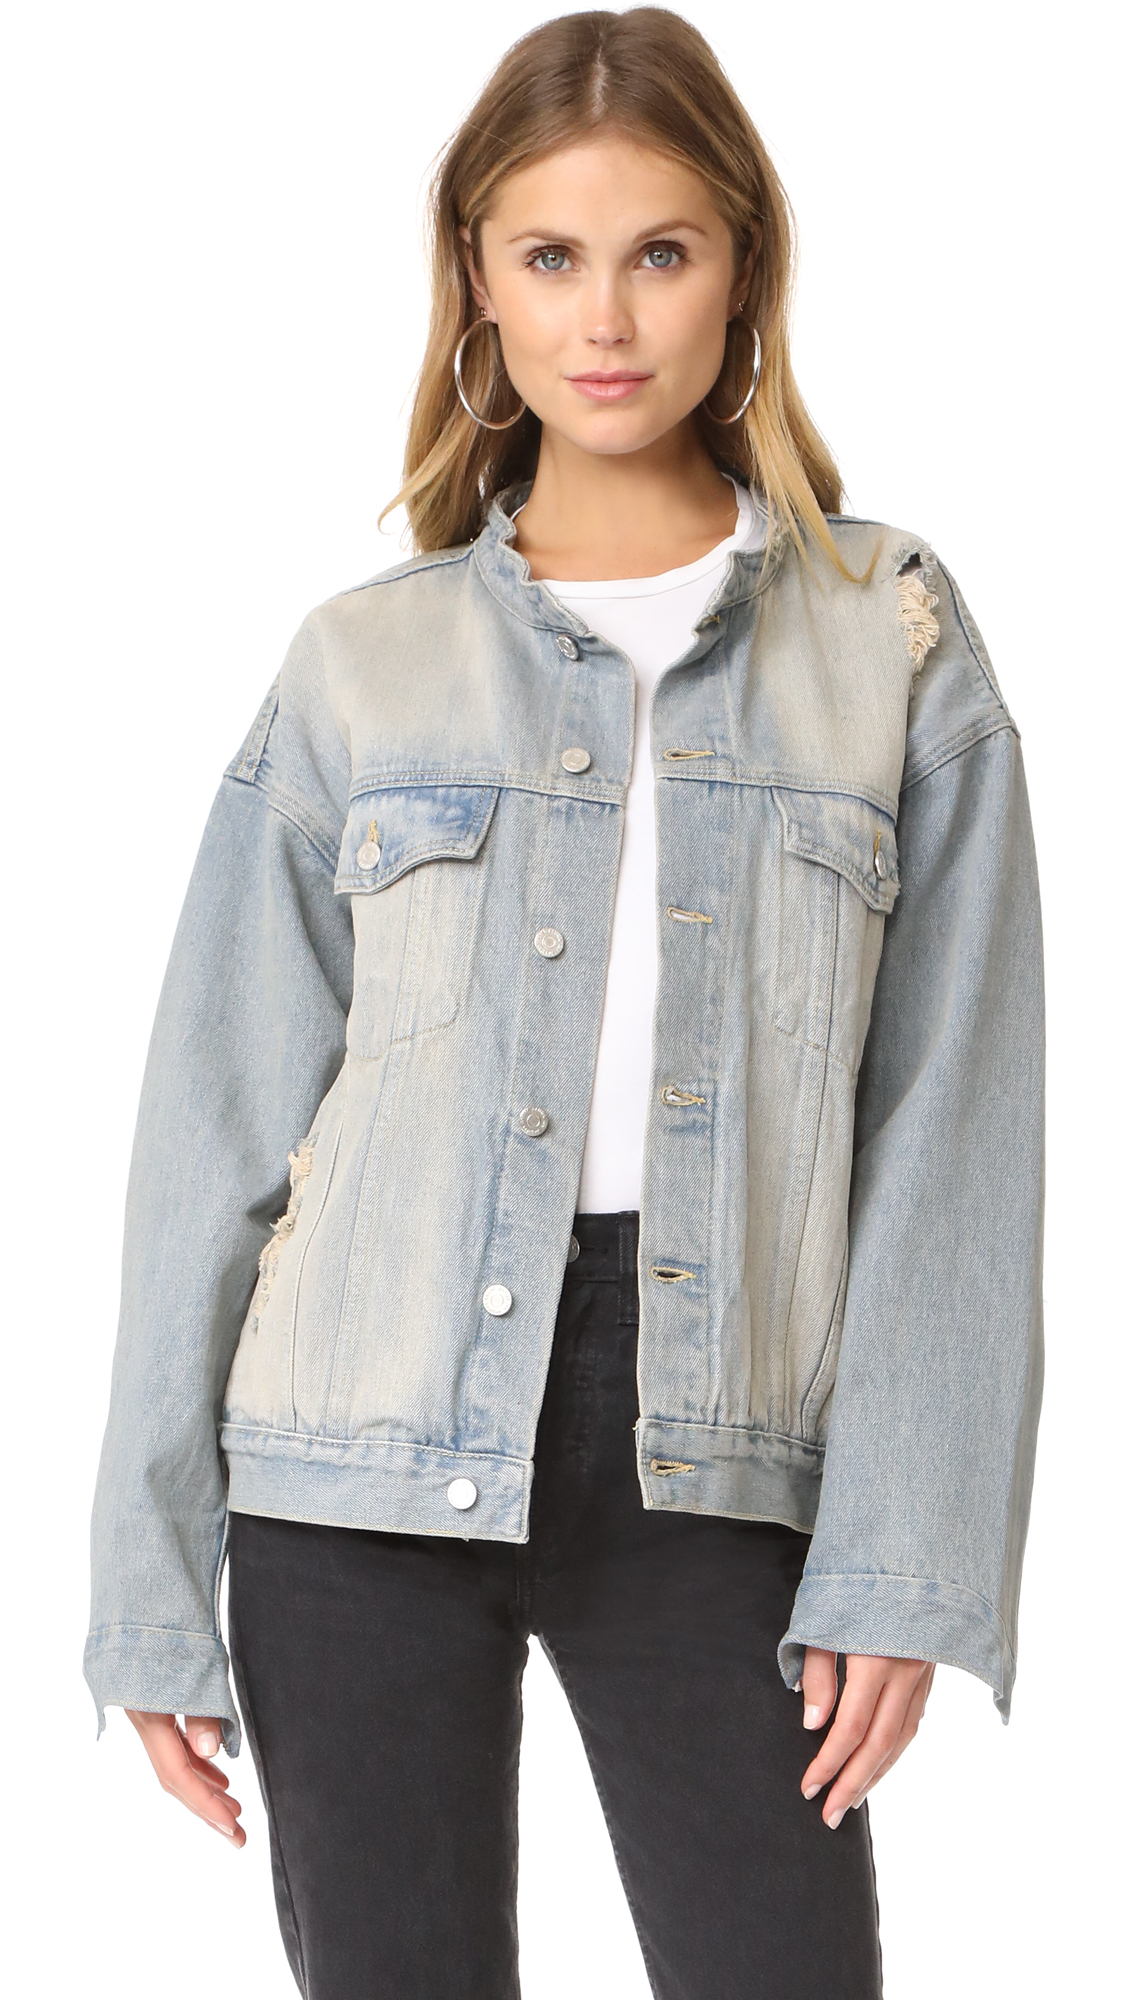 Daniel Patrick Oversized Denim Jacket - Blue Desert